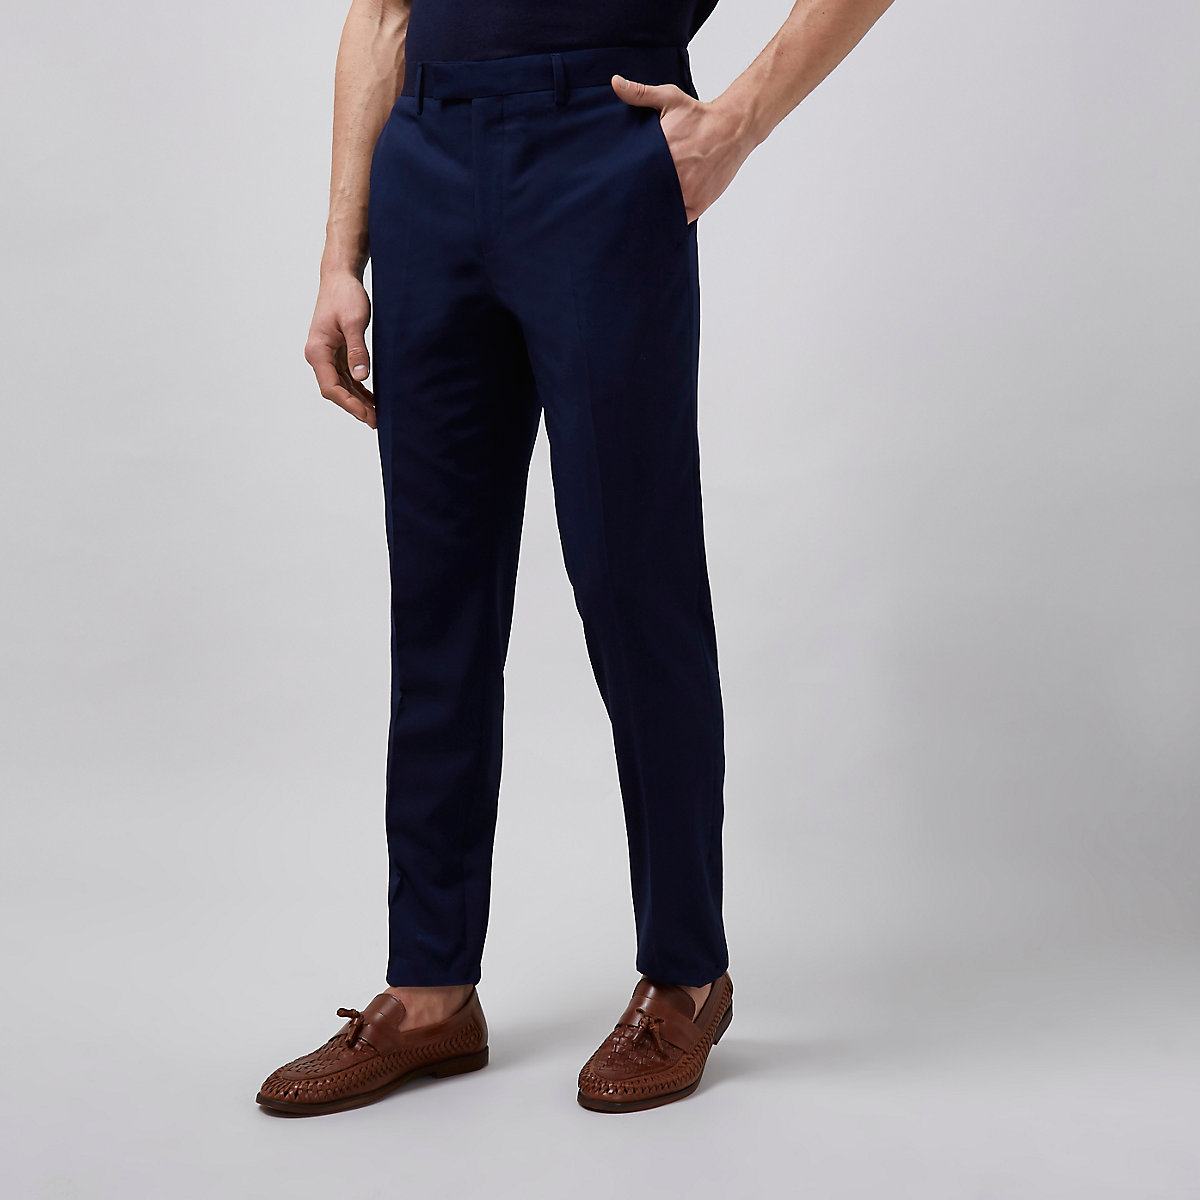 Navy tailored suit pants